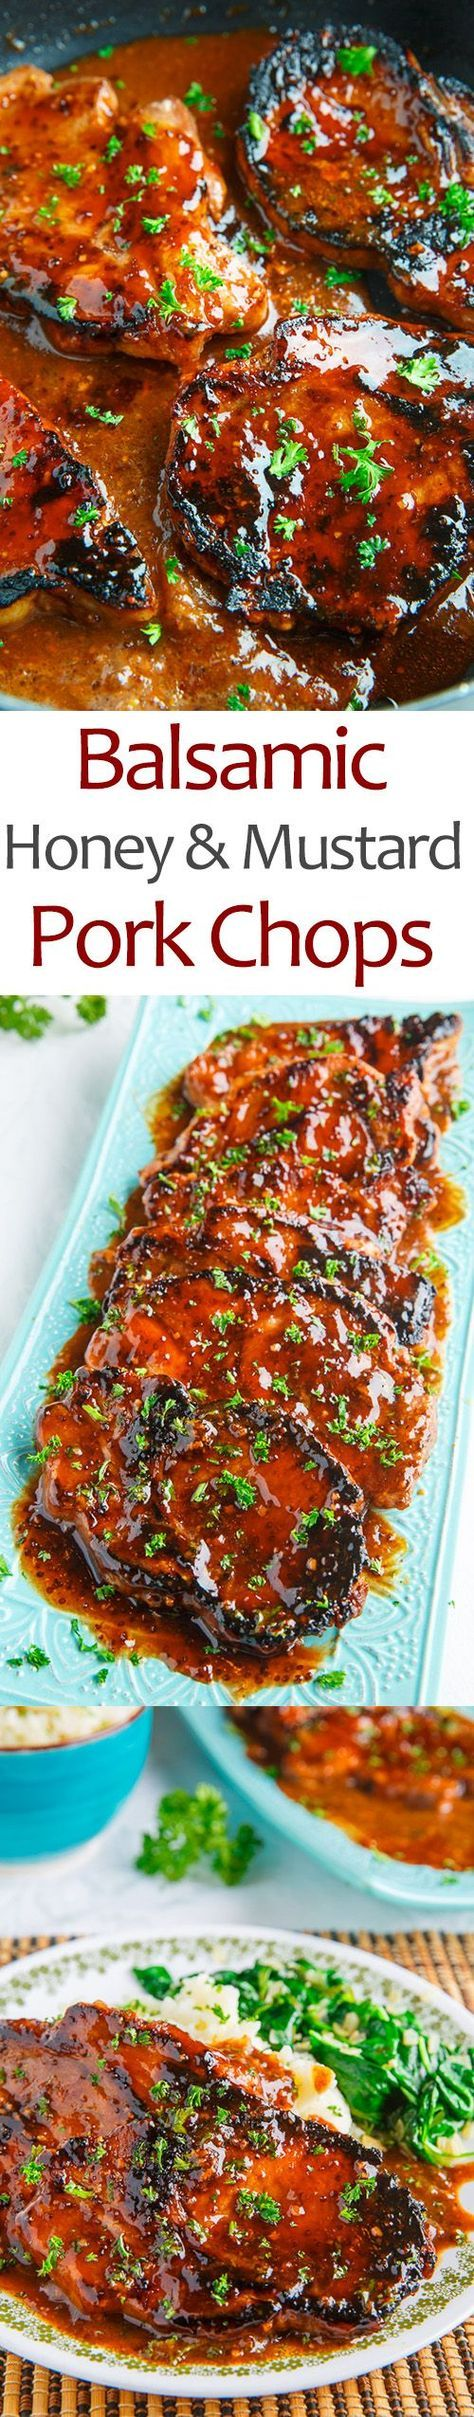 Honey mustard pork chops recipes